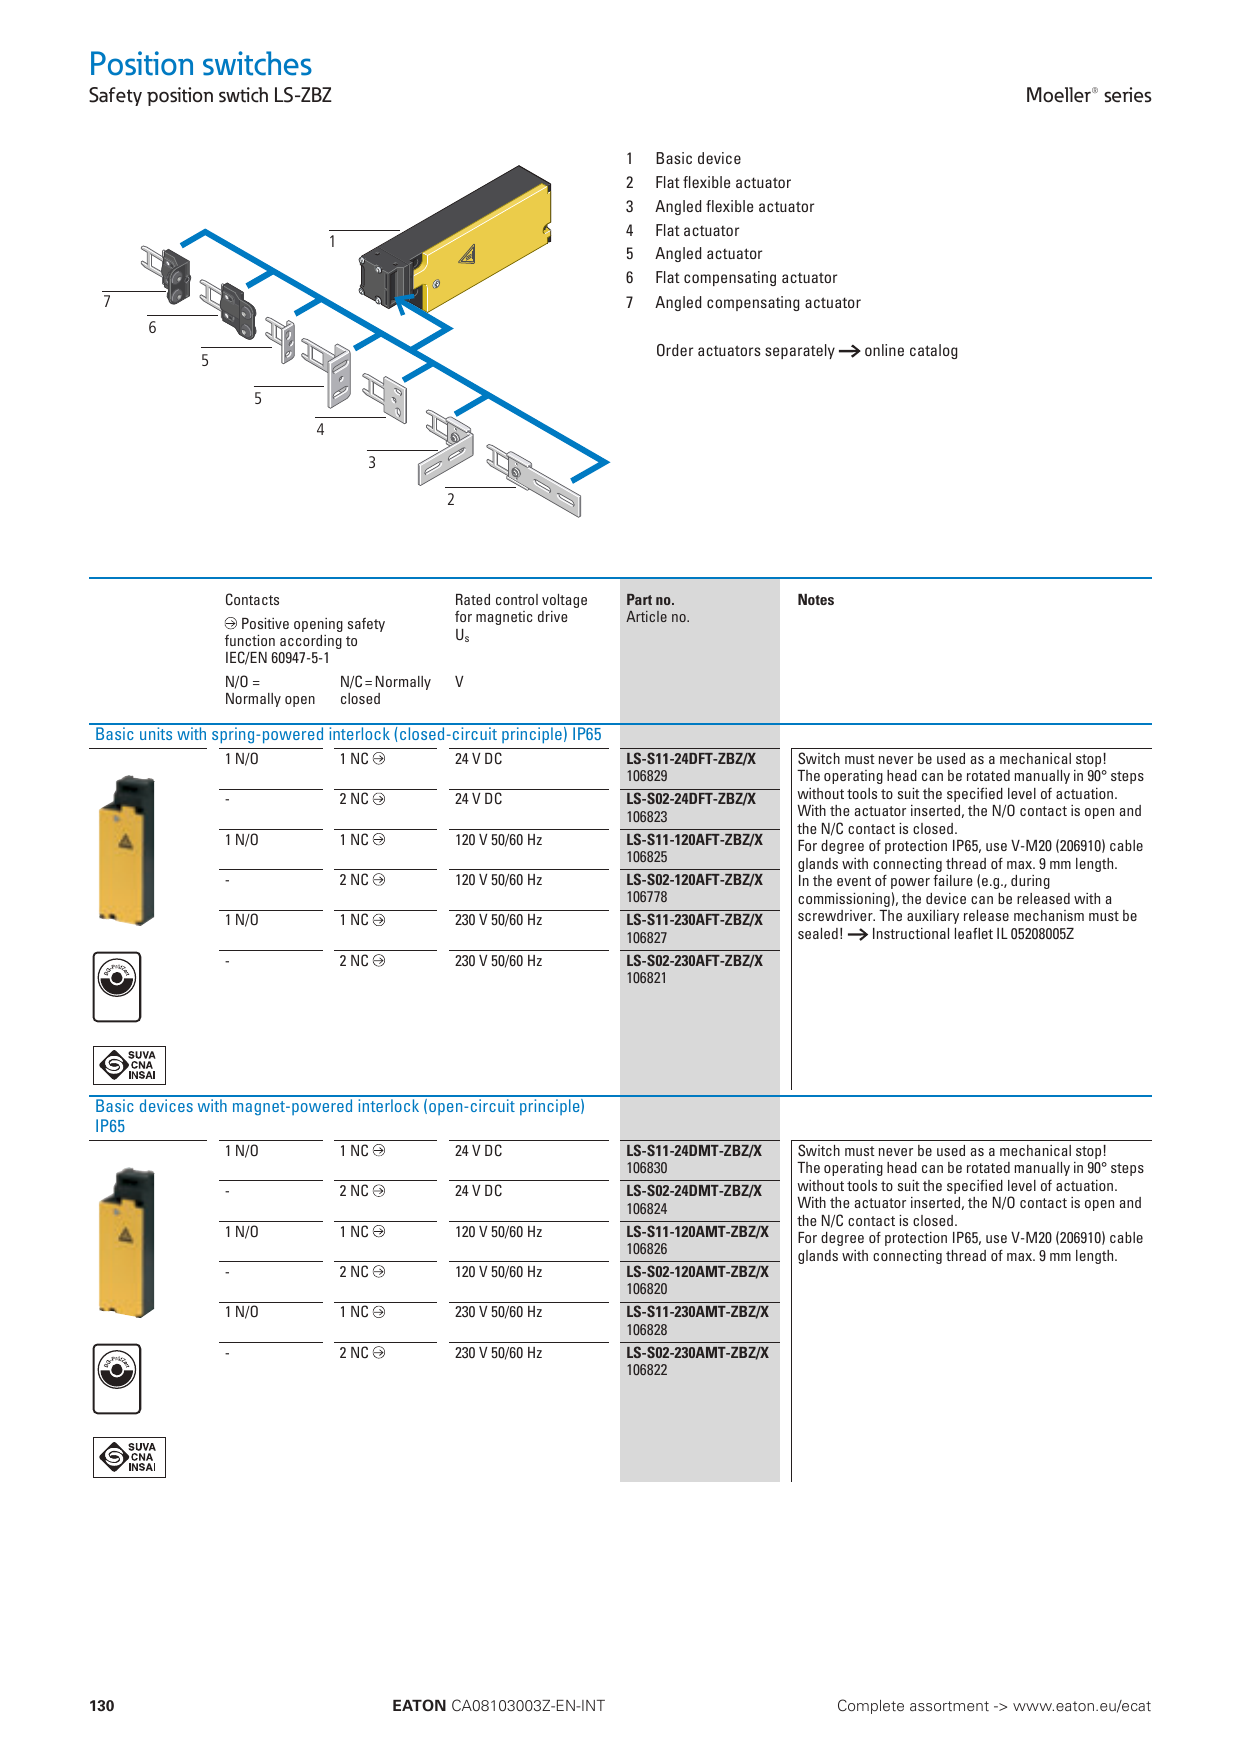 Safety_position_switch_LS-ZB